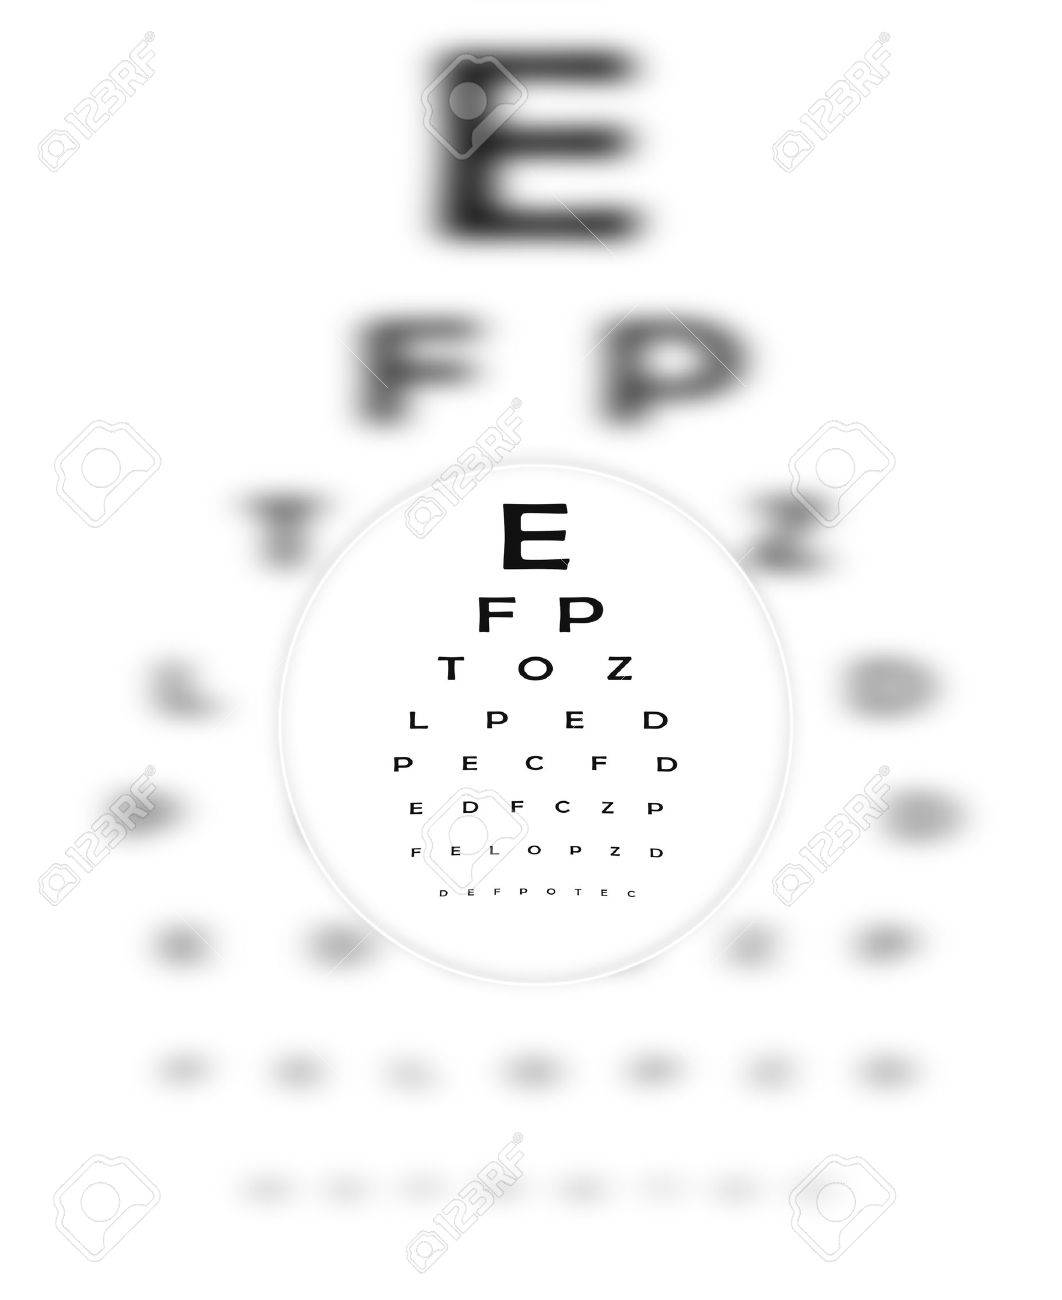 Corrective Contact Lense Focuses Eye Chart Letters Clearly.  The Eye Chart is shown blurred in the background. Stock Photo - 8355136